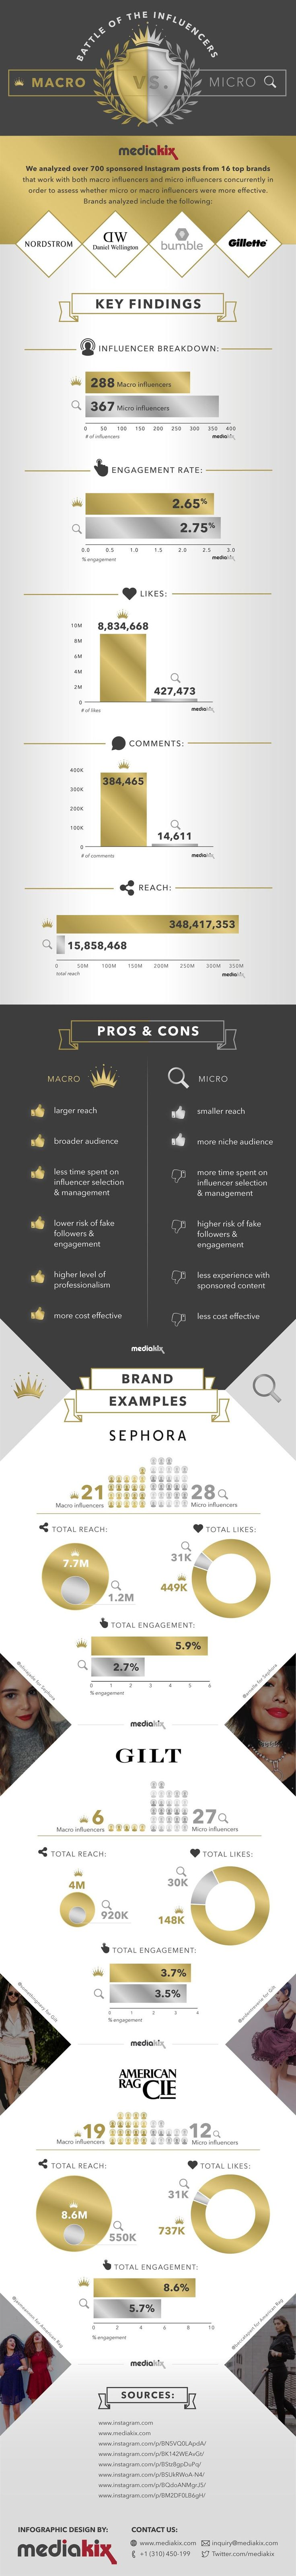 See the pros and cons of working with Instagram micro-influencers vs. macro-influencers, including average engagement rates on sponsored posts and much more.